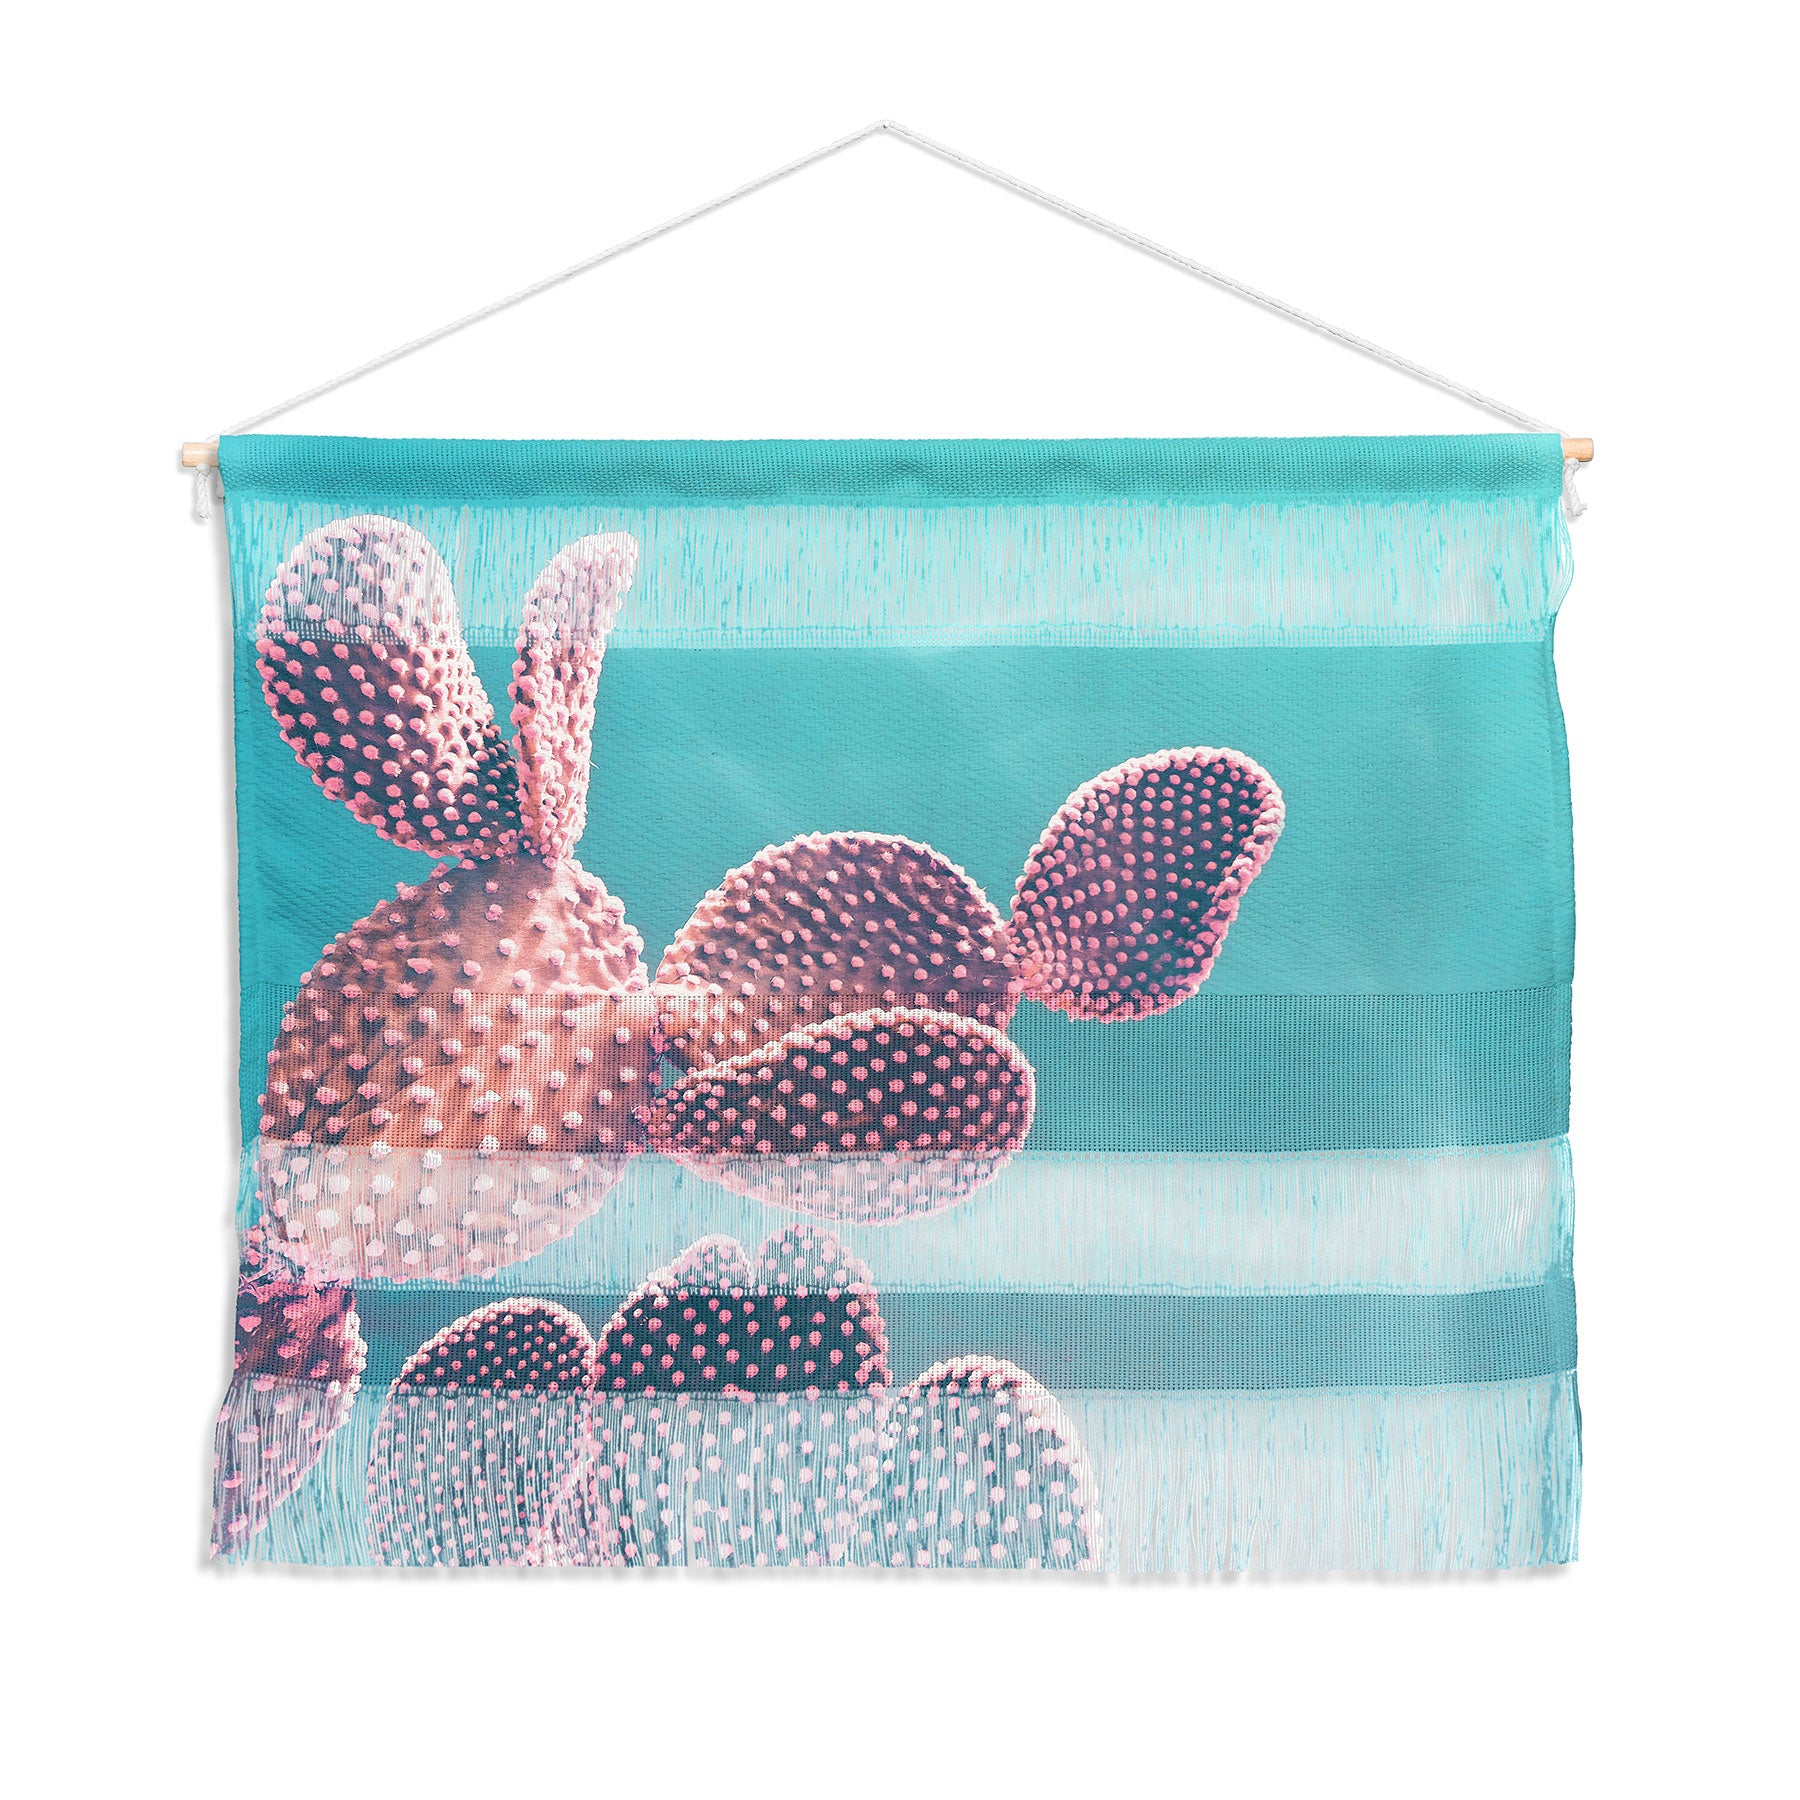 Emanuela Carratoni Candy Cactus Wall Hanging Landscape